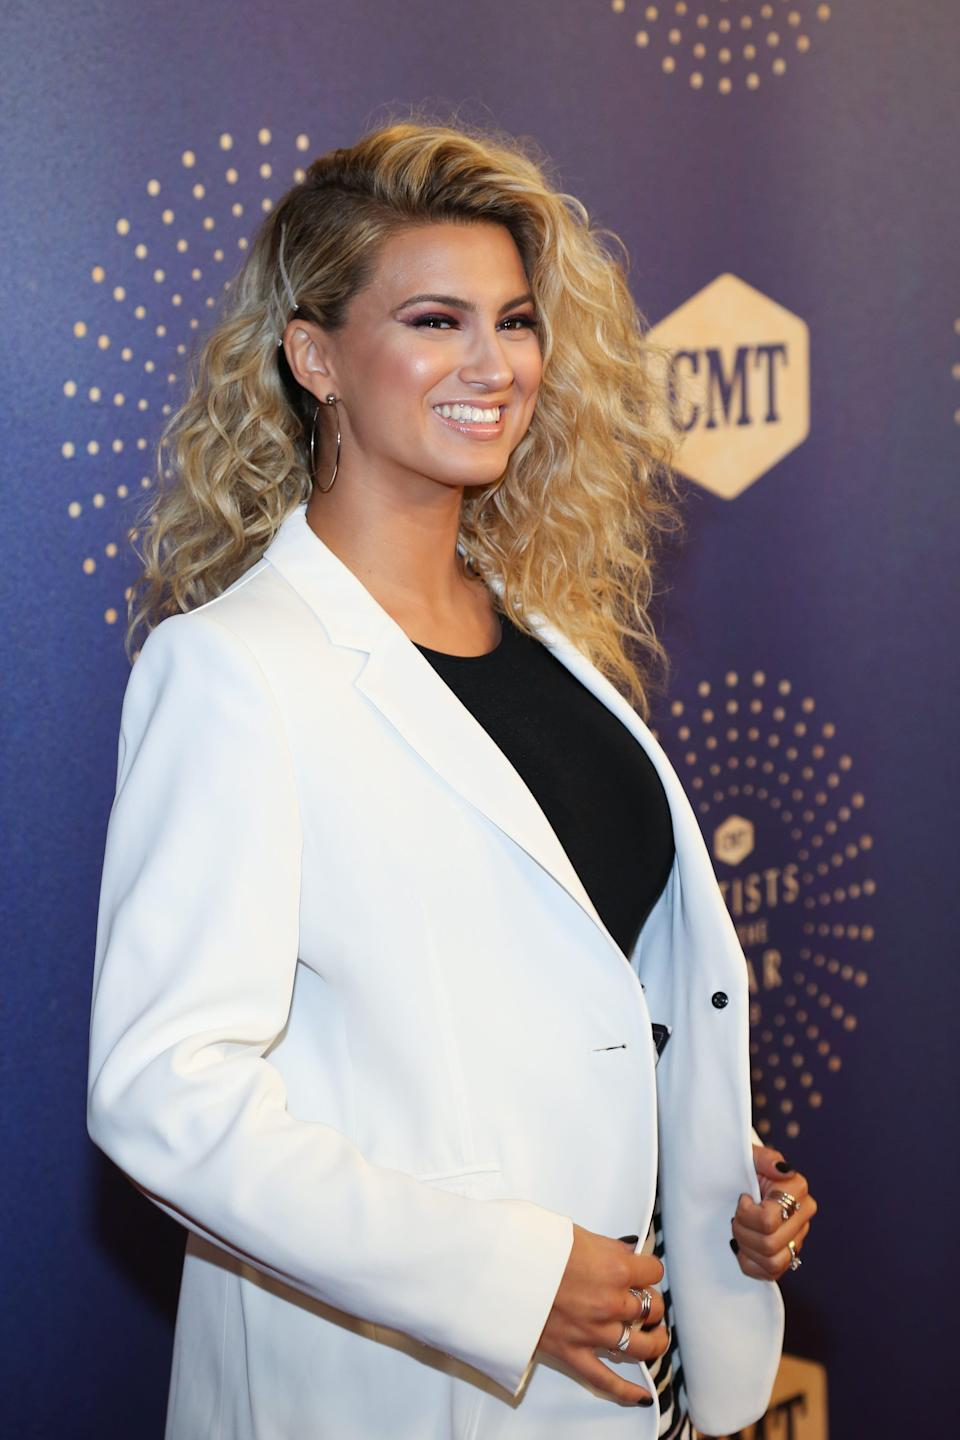 Tori Kelly attends the 2019 CMT Artists of the Year.